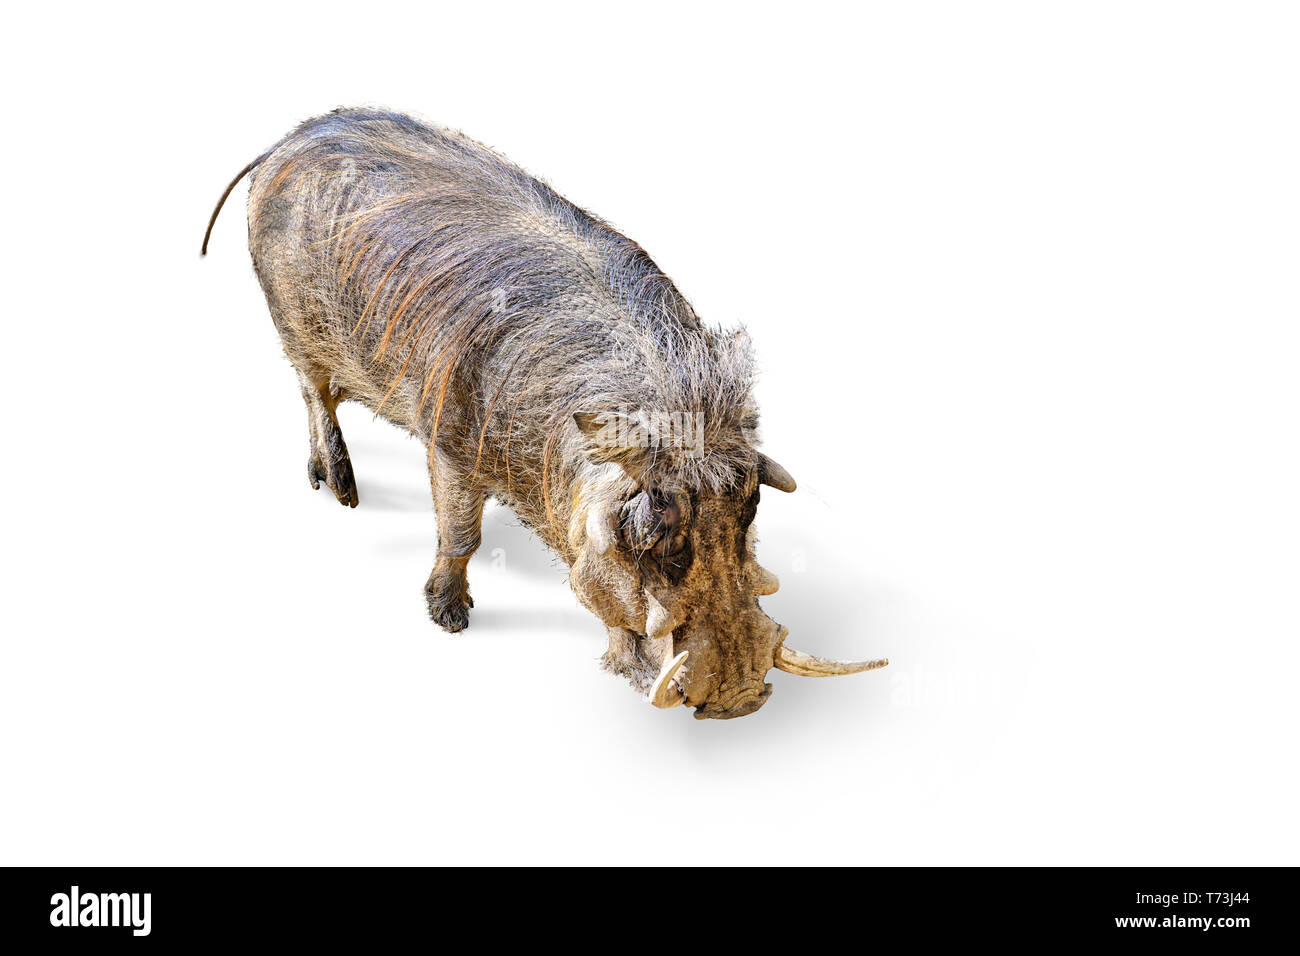 common warthog, phacochoerus africanus. Location: Namibia, Botsuana, Zimbabwe, and Natal in Africa. A sensitive snout that's wide and flat helps these - Stock Image